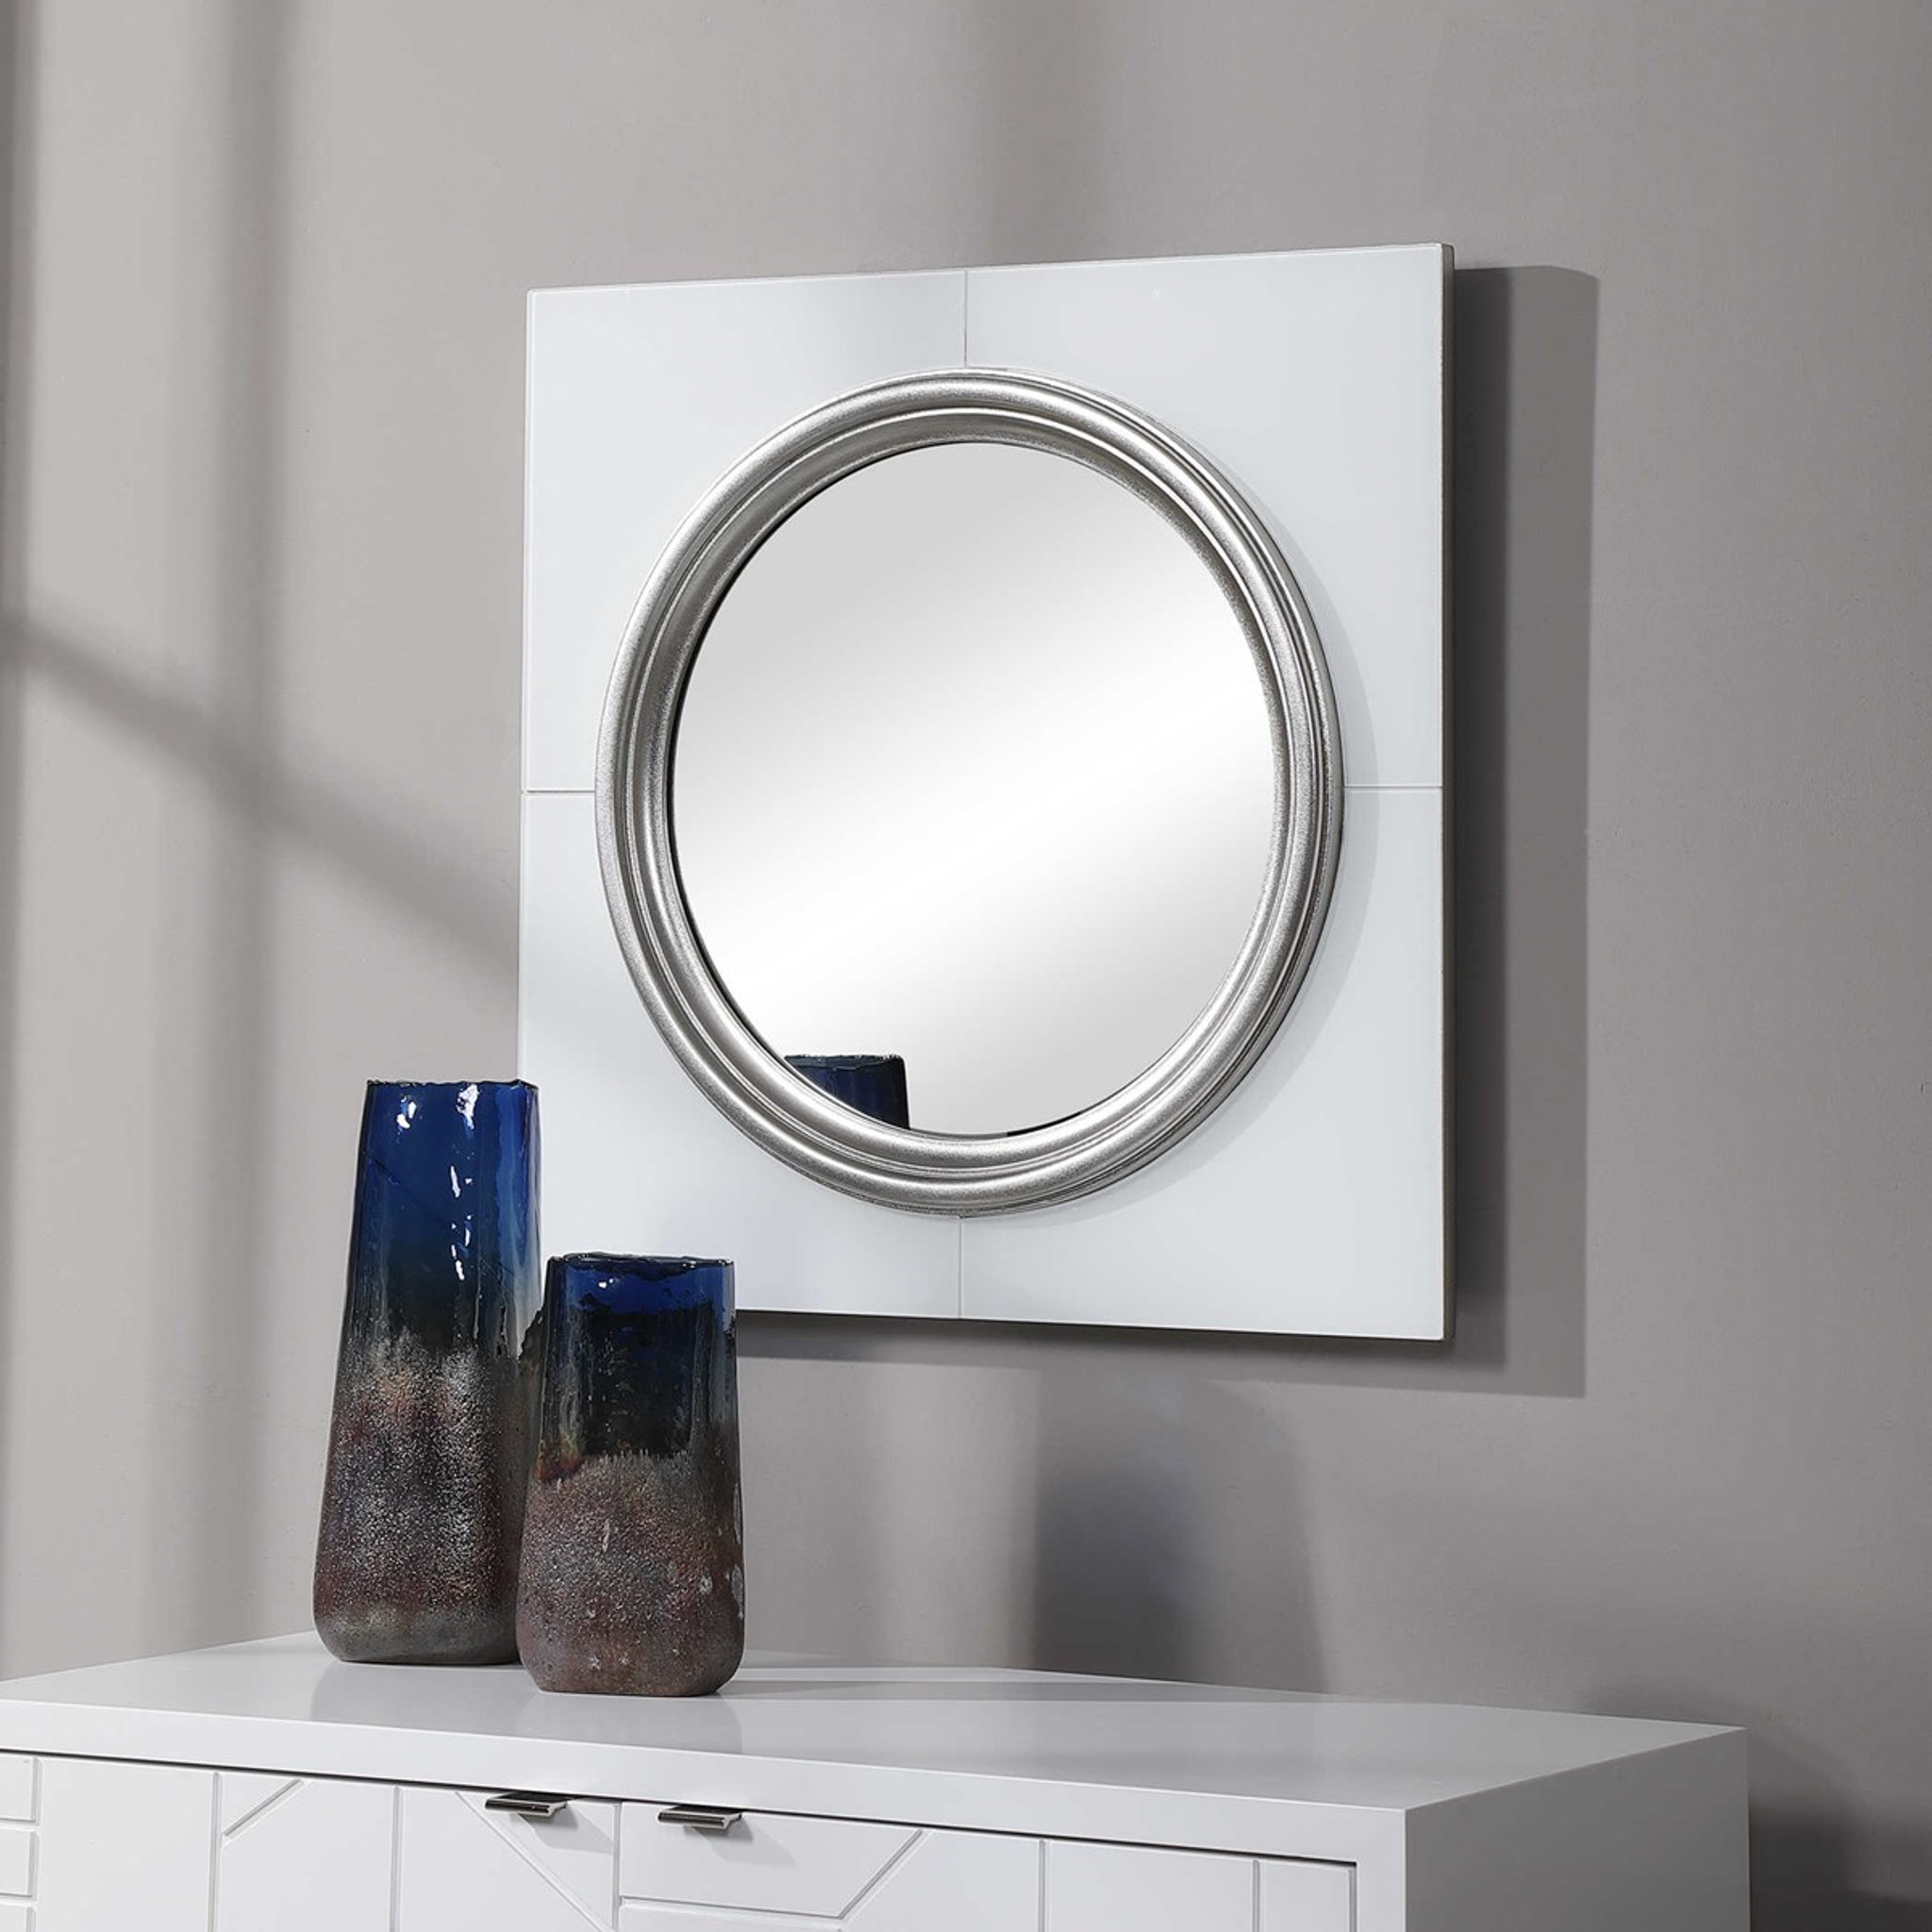 uttermost Gouveia white glass silver bullseye round modern wall mirror 24 inch